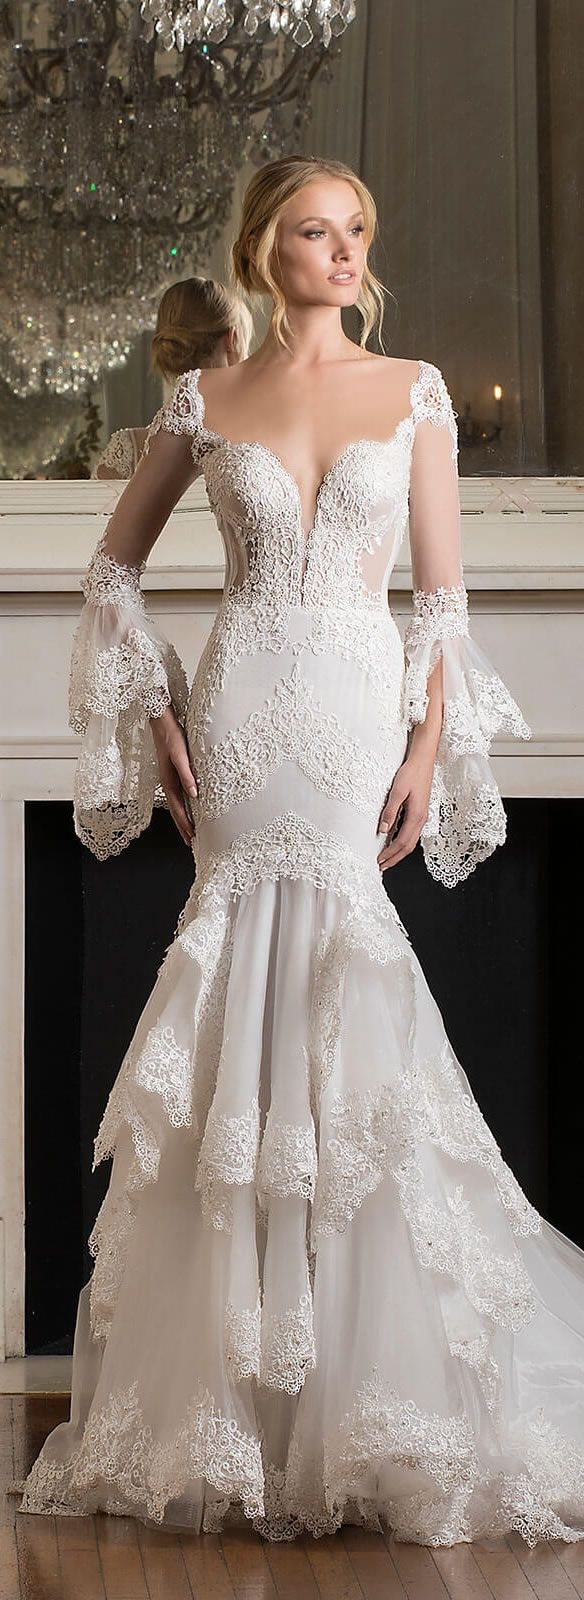 Luxe Romantic Bohemian Chic |   Pnina Tornai Wedding Dress | Dimensions Collection